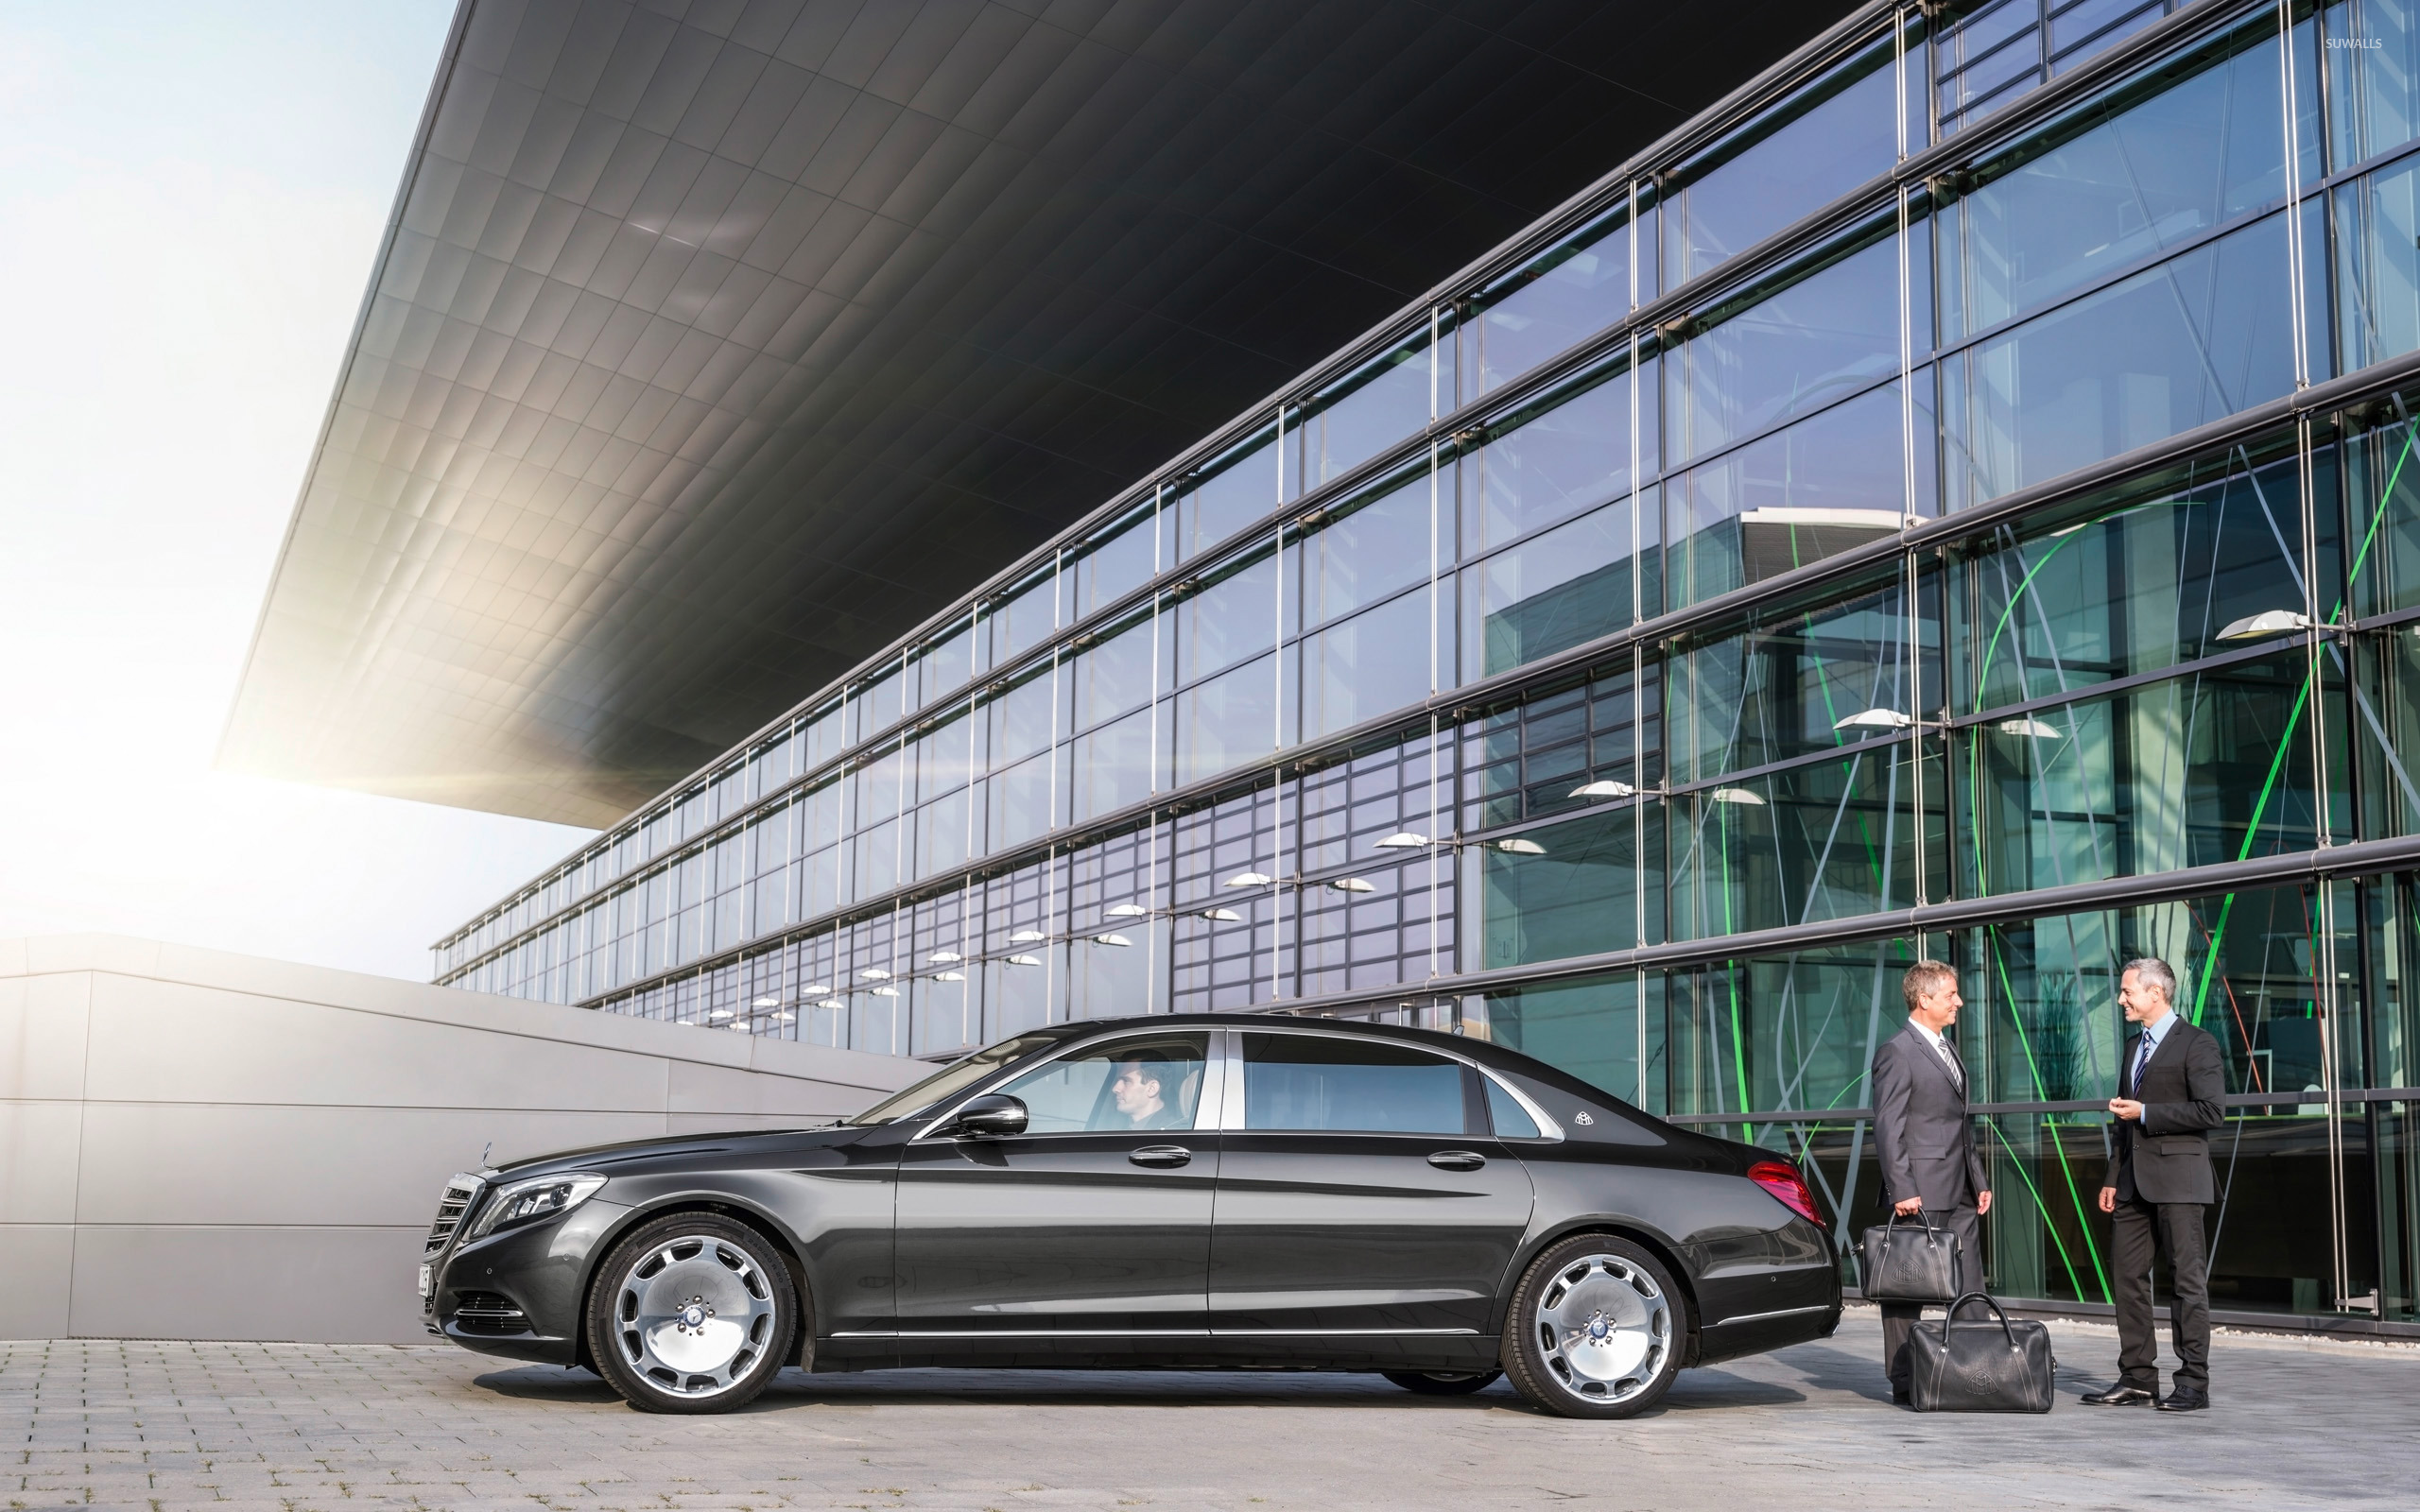 2015 Mercedes Maybach S600 [18] wallpaper   Car wallpapers 2560x1600